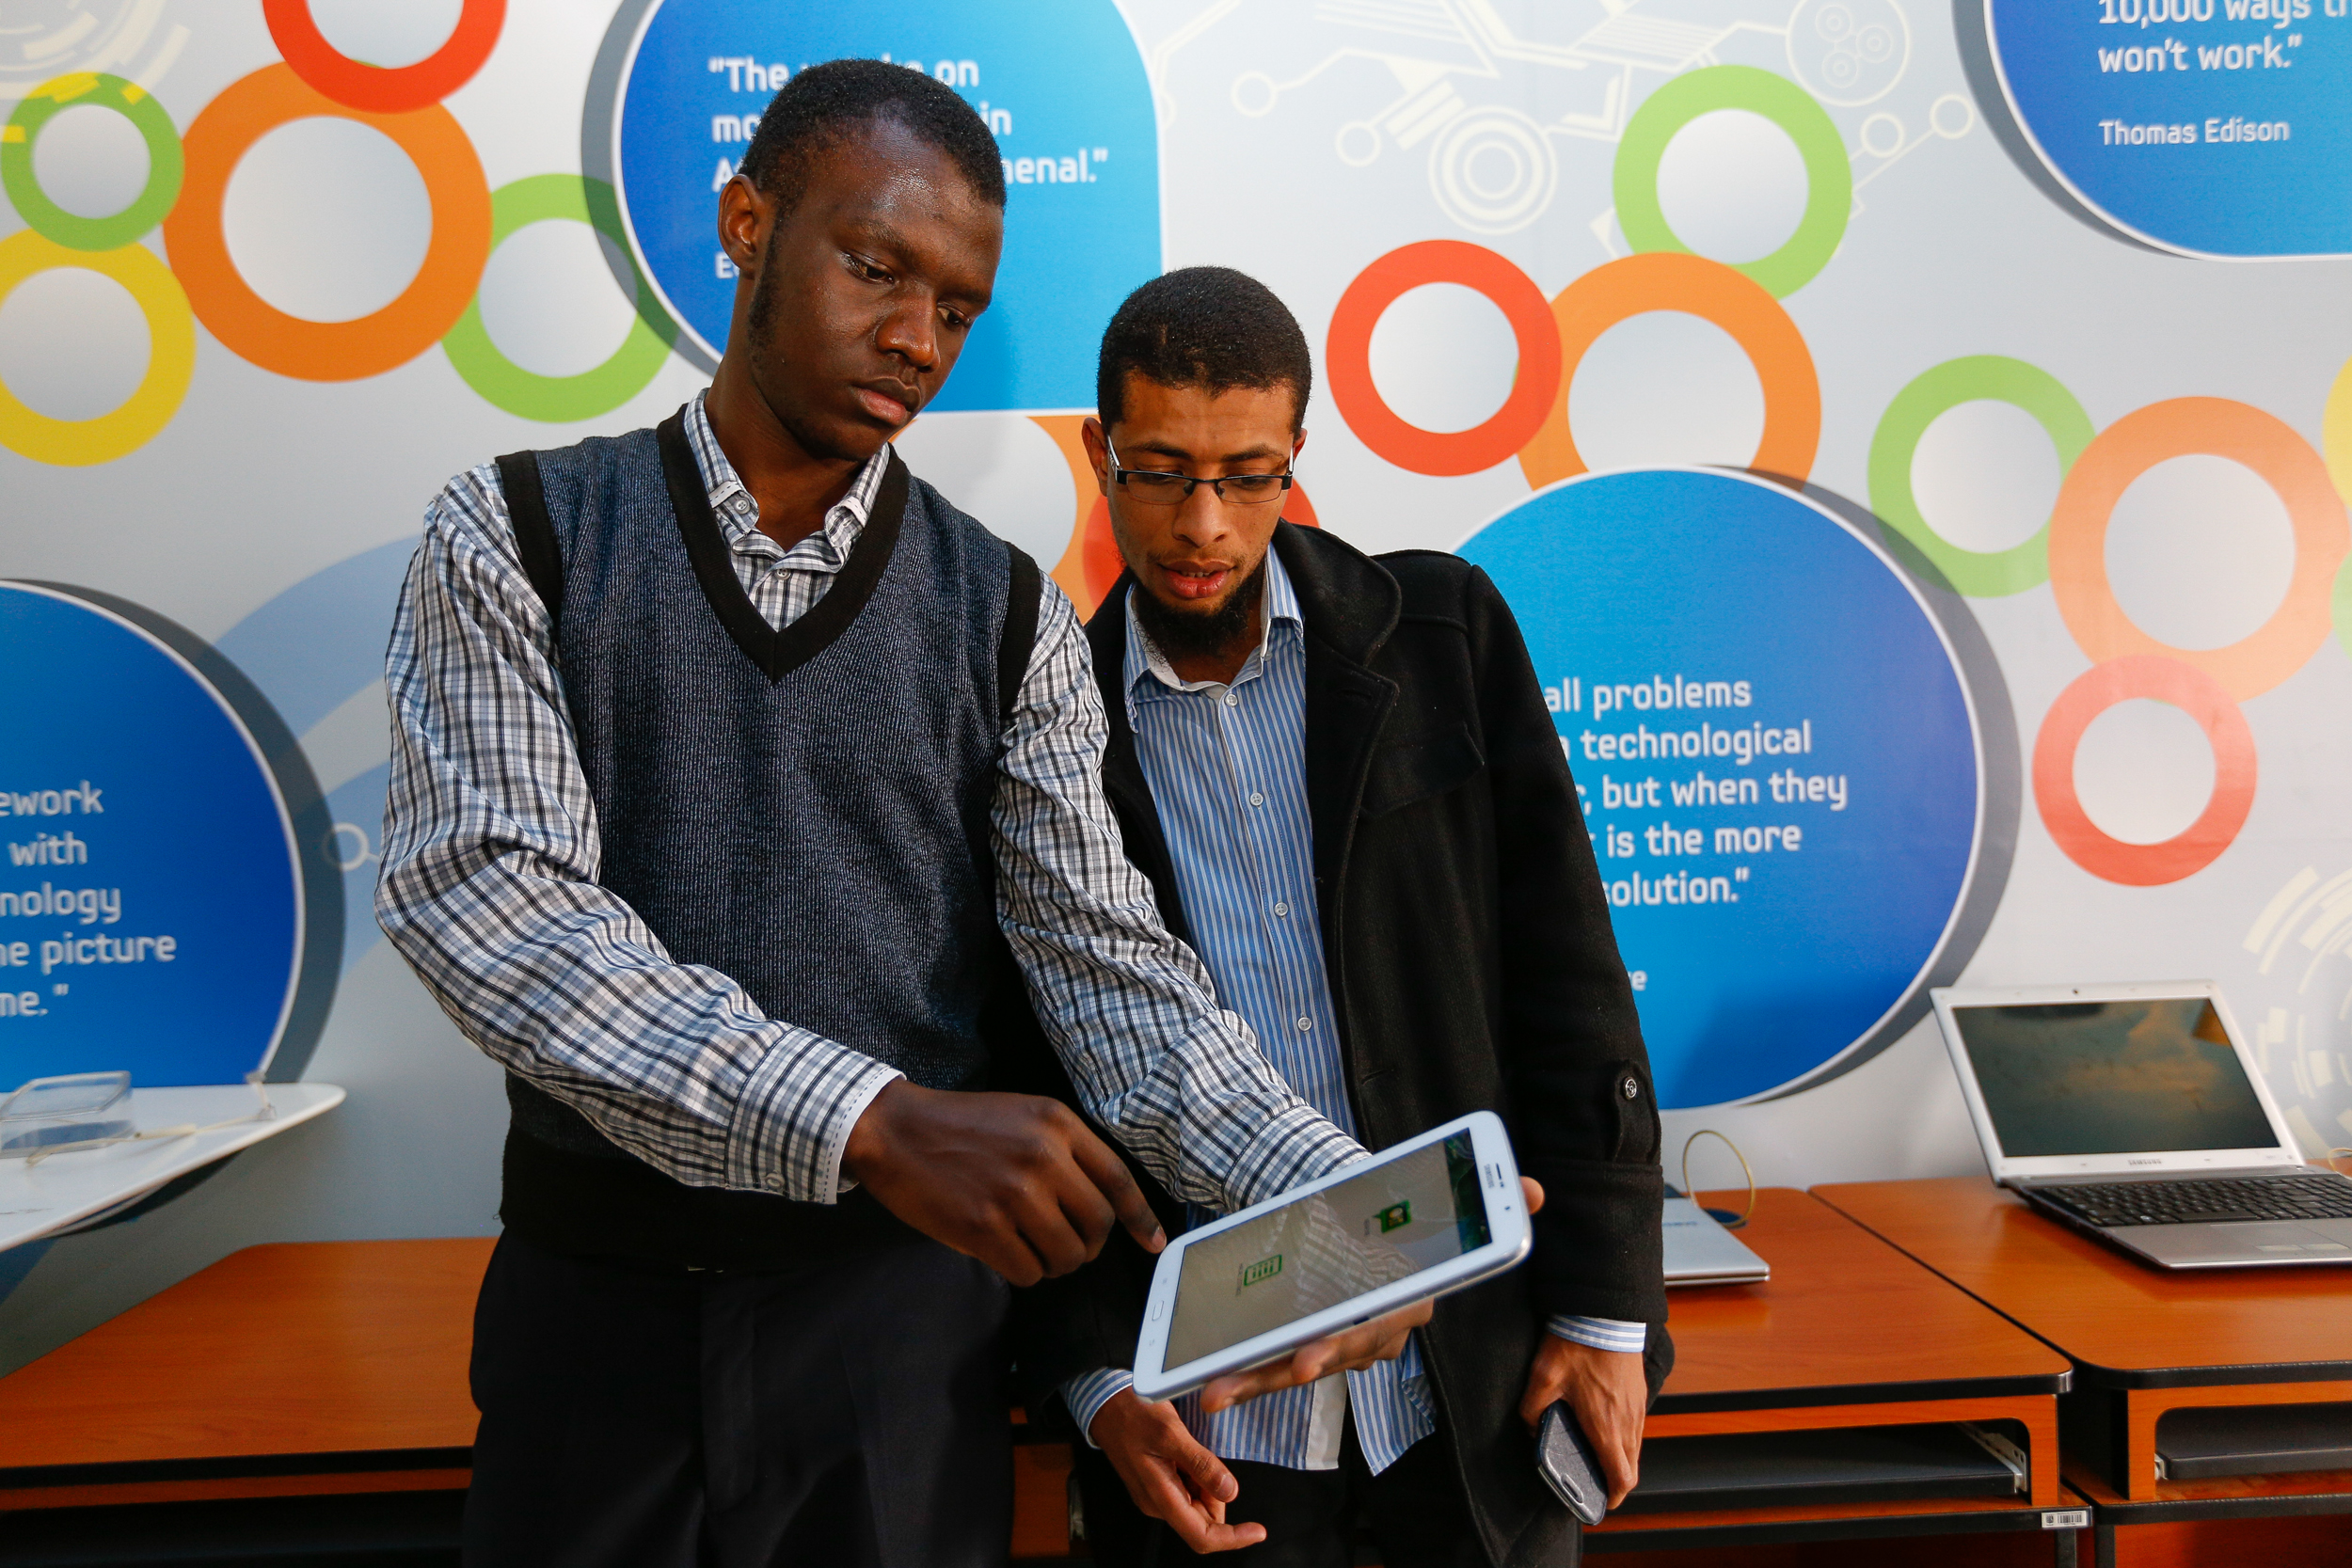 Samsung Unveils Eight New Apps in Partnership With @iLab Africa